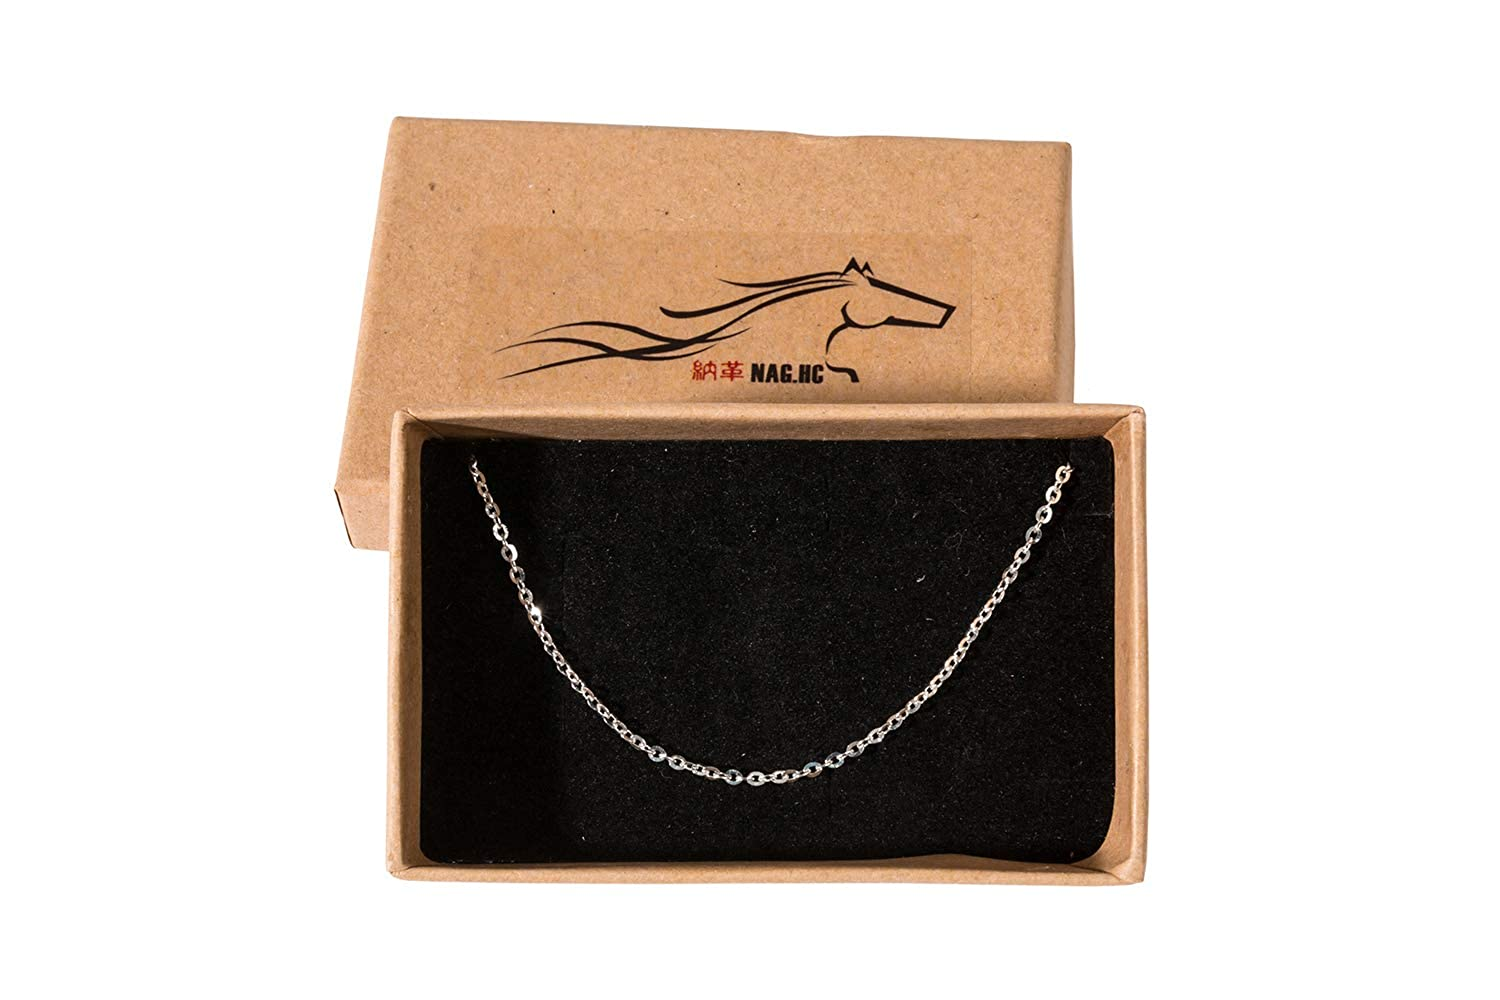 Italian Necklace Chain 18 NAGHC 925 Sterling Silver Chain 1.5MM Sparkly Cable Chain Super Shiny/& Strong Lovely Chain